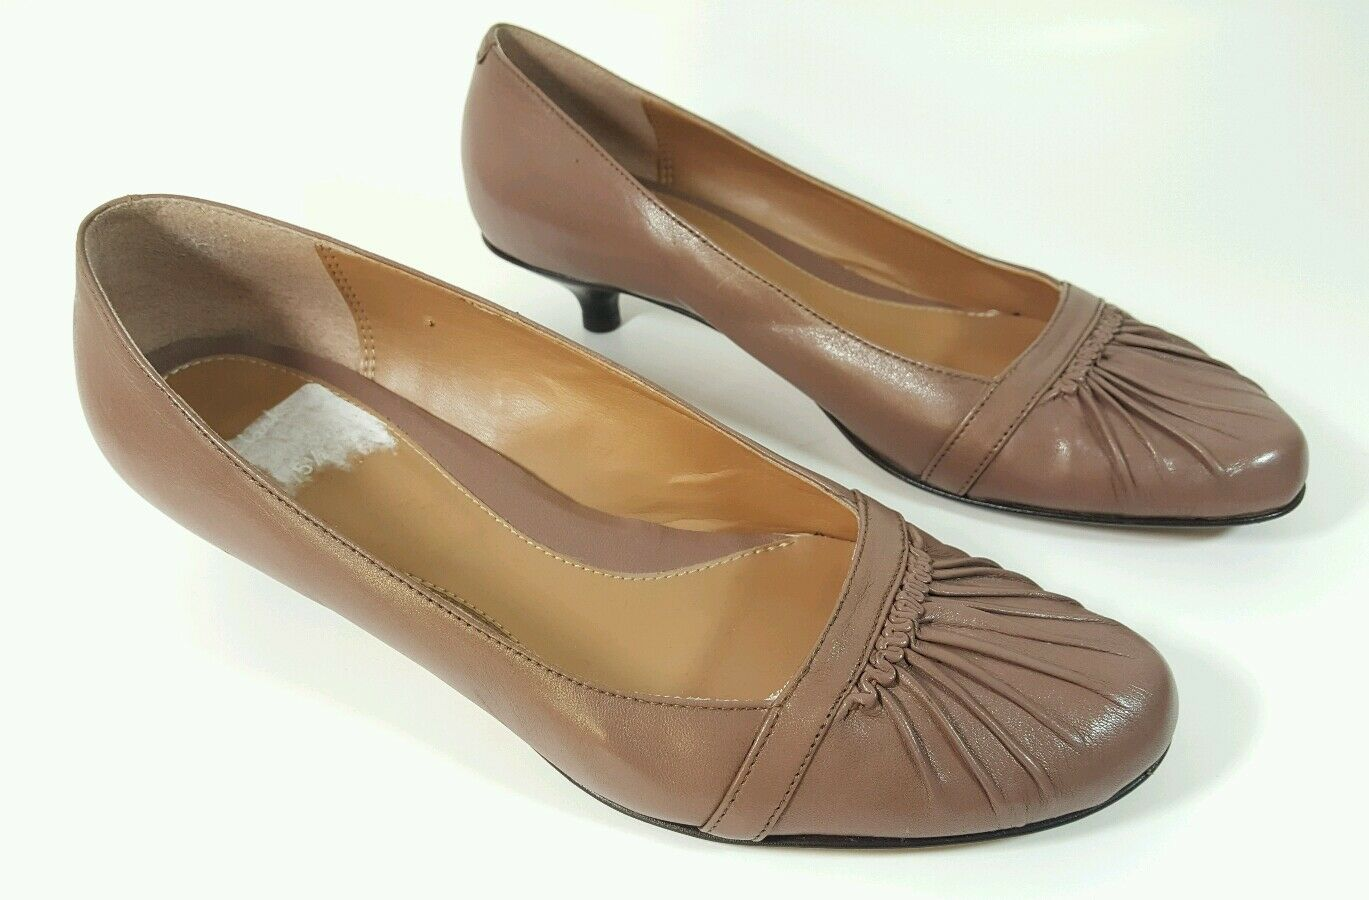 Clarks womens brown leather low heel shoes uk 5.5